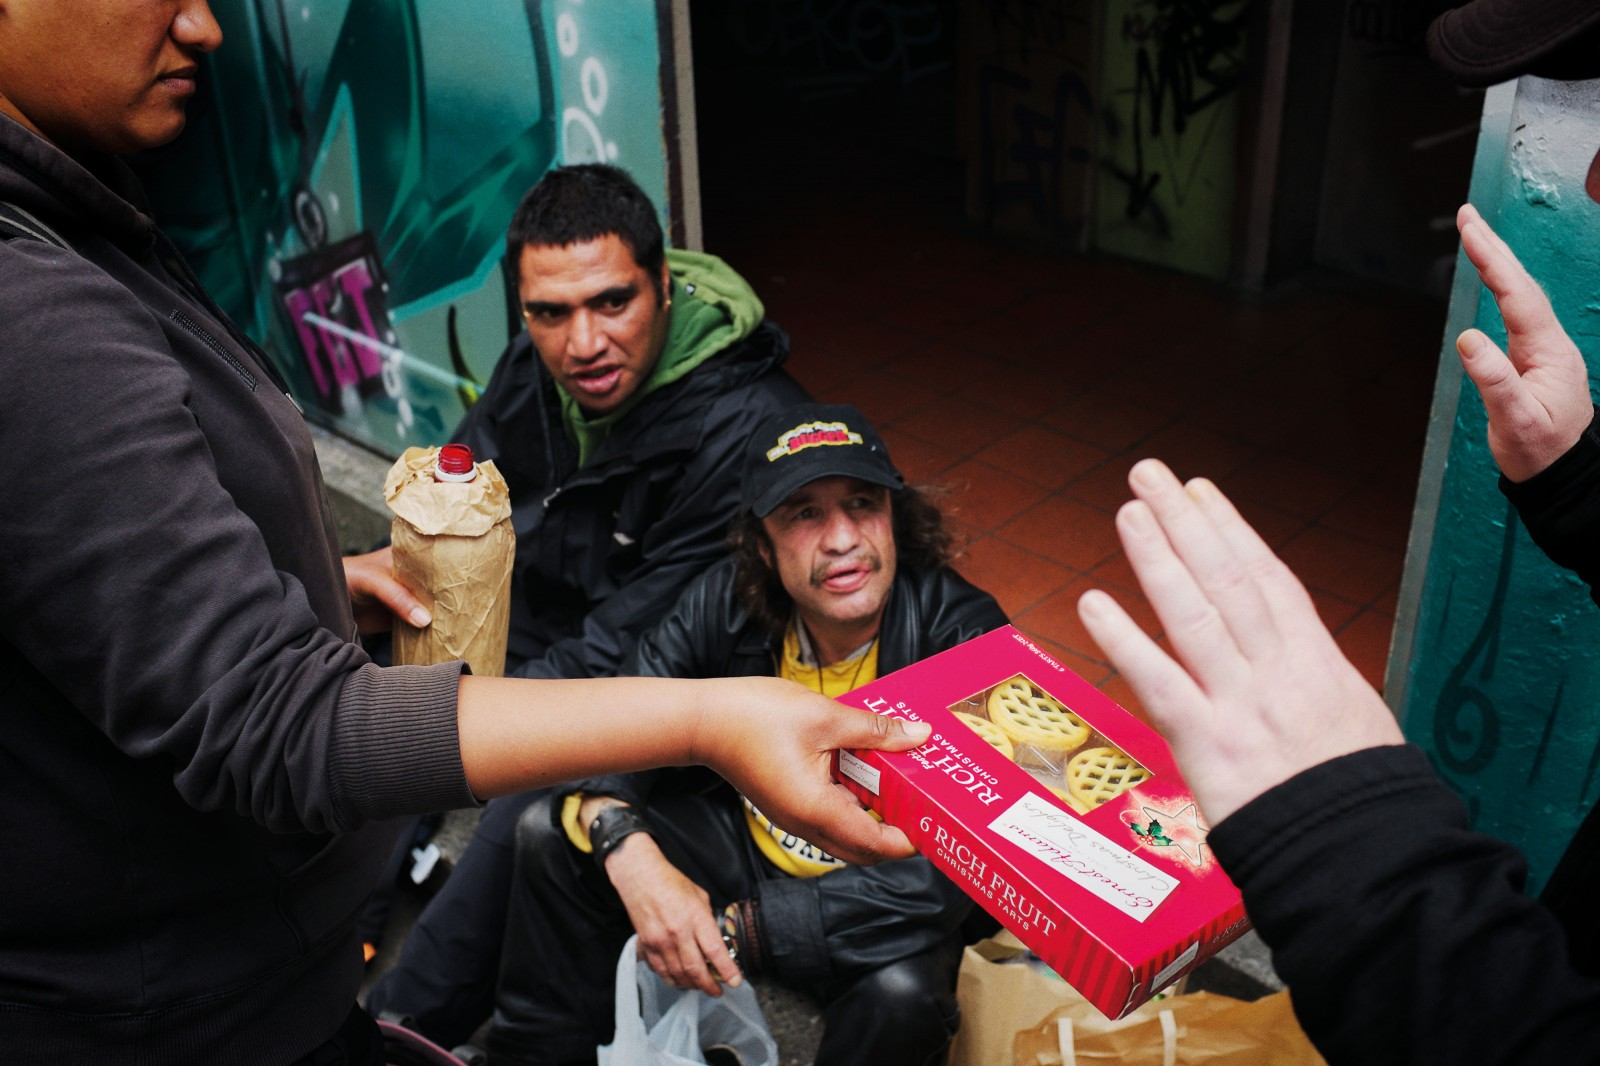 Many people experiencing homelessness have to manage on $50 or less a week after bills, and to make ends meet they often rely on food parcels provided by charities. Here, items of food are being handed out after a Wellington charity Christmas barbeque.